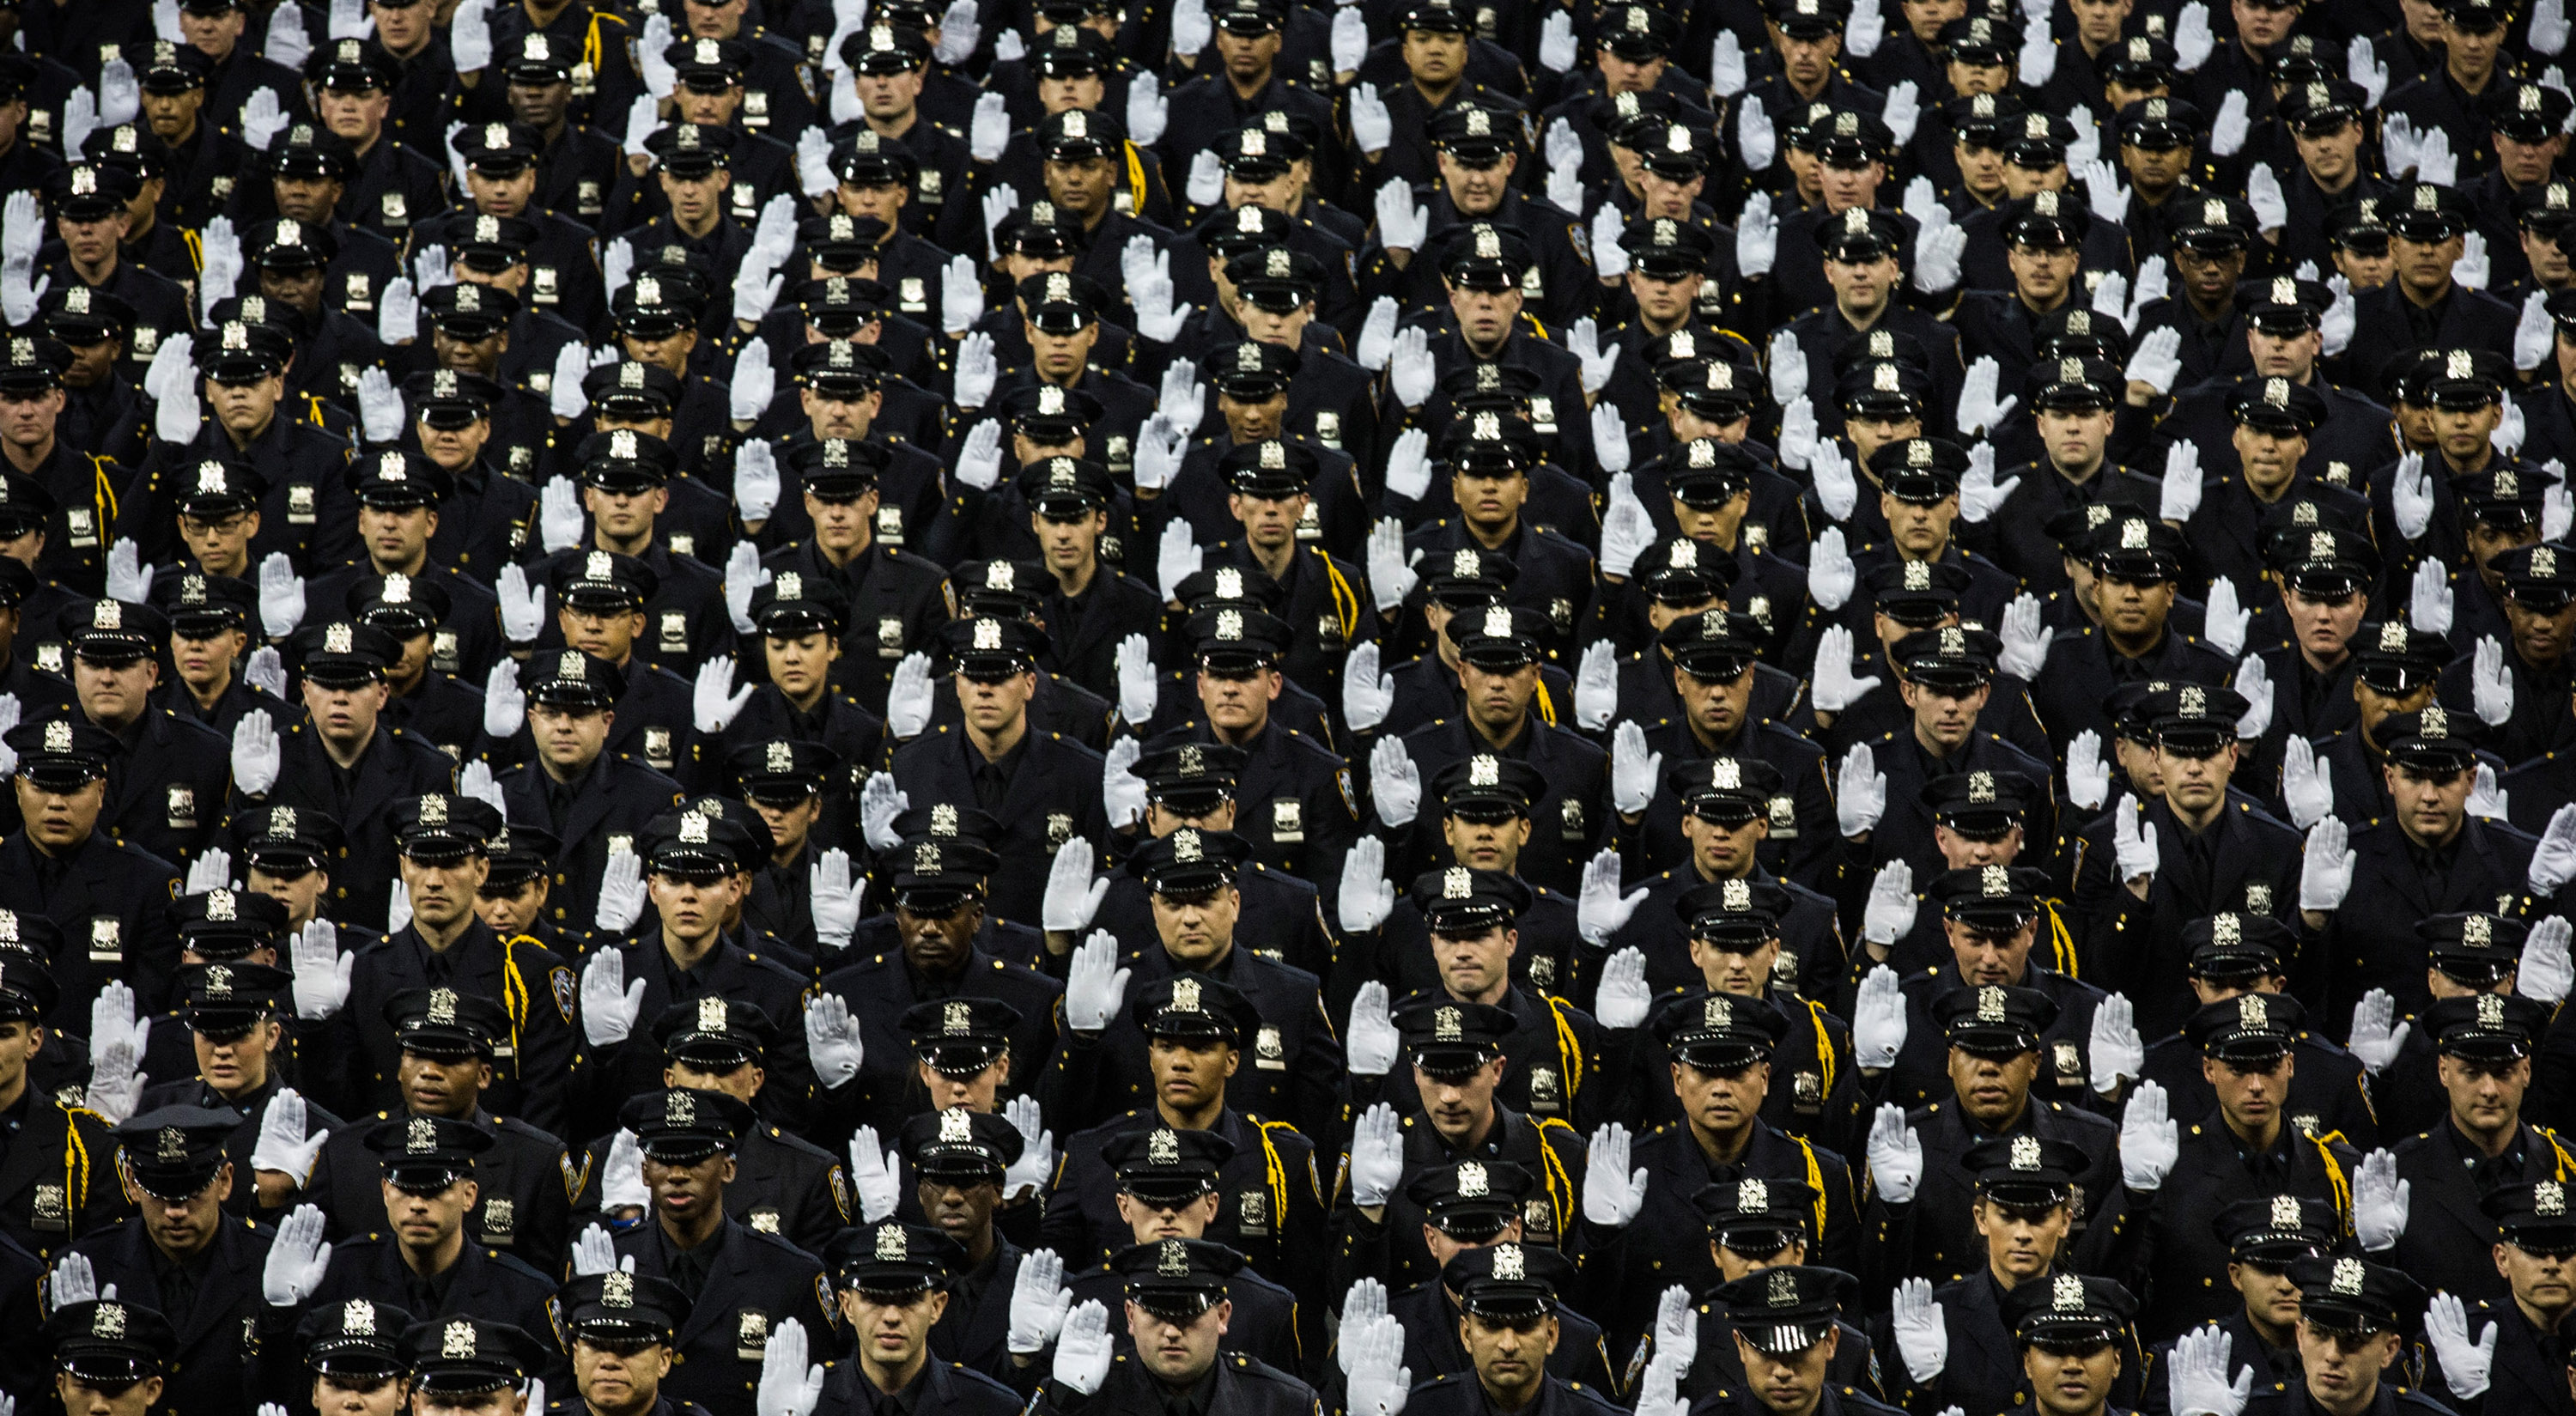 A real look at nypd s experimental community policing plan - Garden city police department ny ...